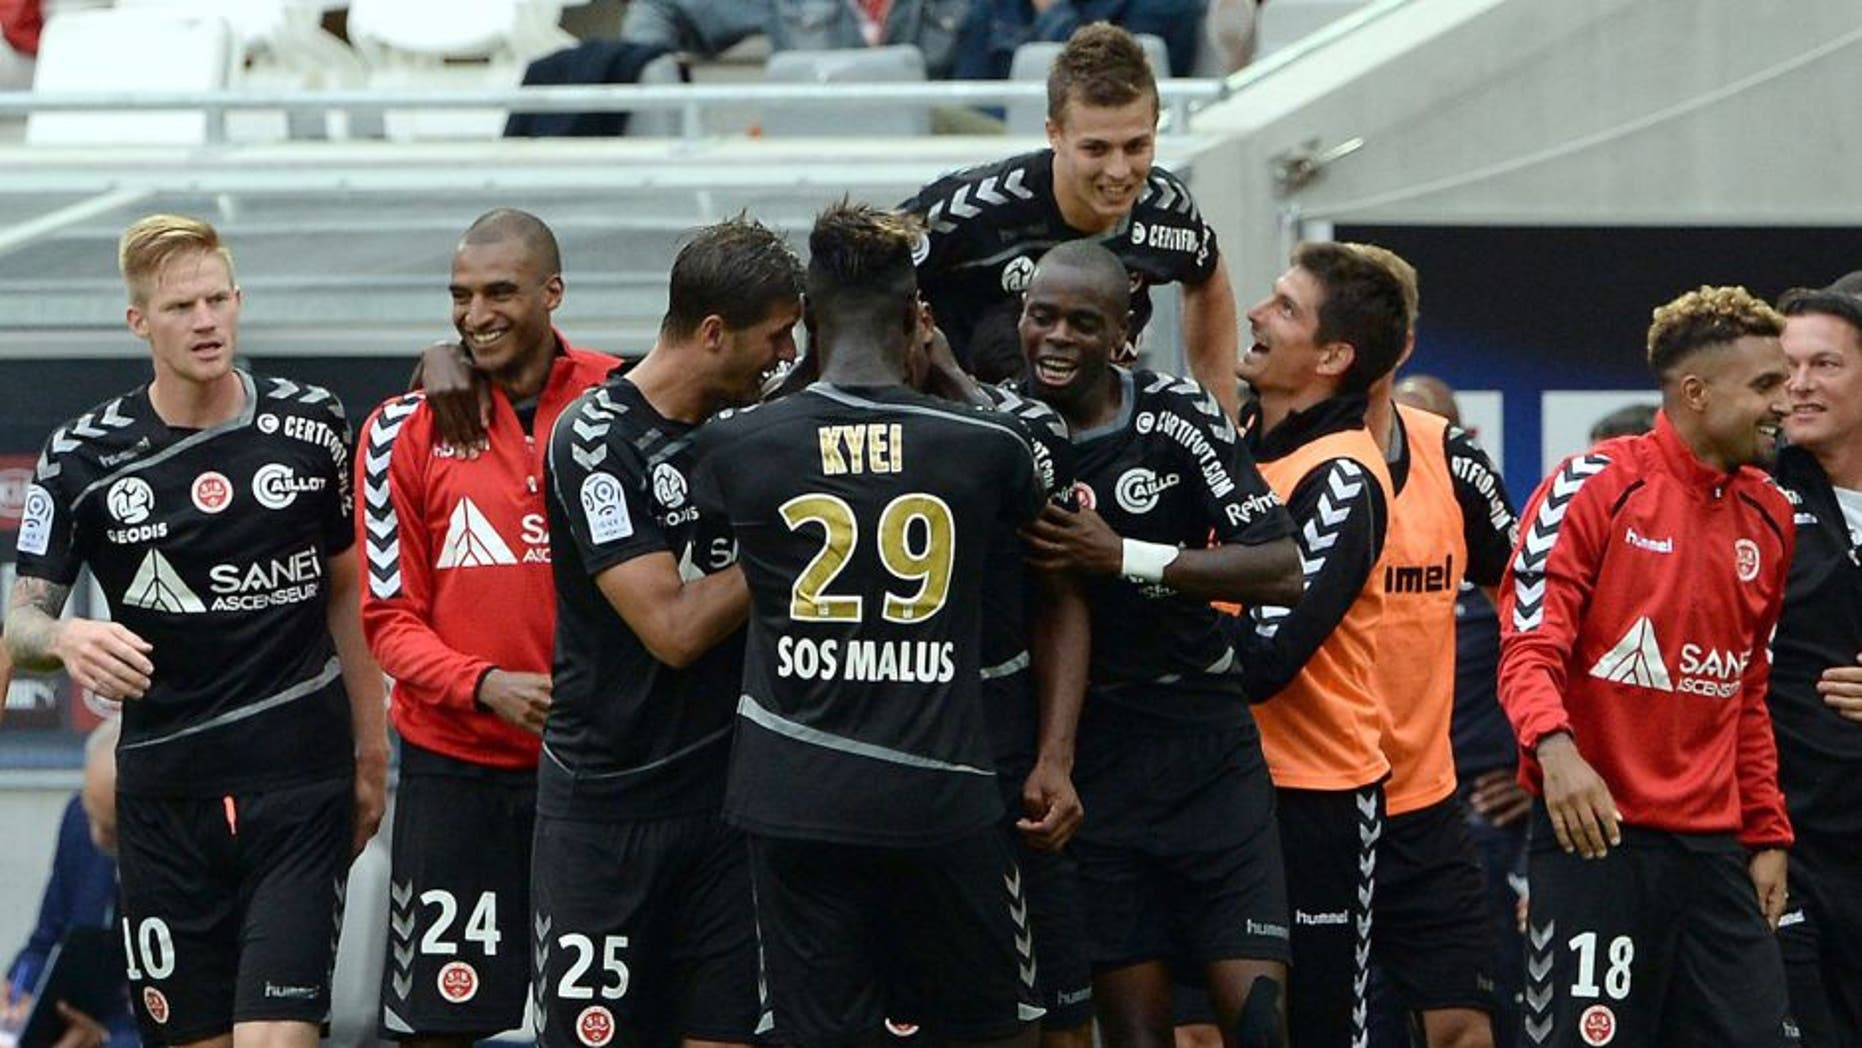 Reims' players celebrate after scoring a goal during the French L1 football match between Bordeaux and Reims at the new Stade in Bordeaux, southwestern France, on August 9, 2015. AFP PHOTO / JEAN PIERRE MULLER (Photo credit should read JEAN PIERRE MULLER/AFP/Getty Images)